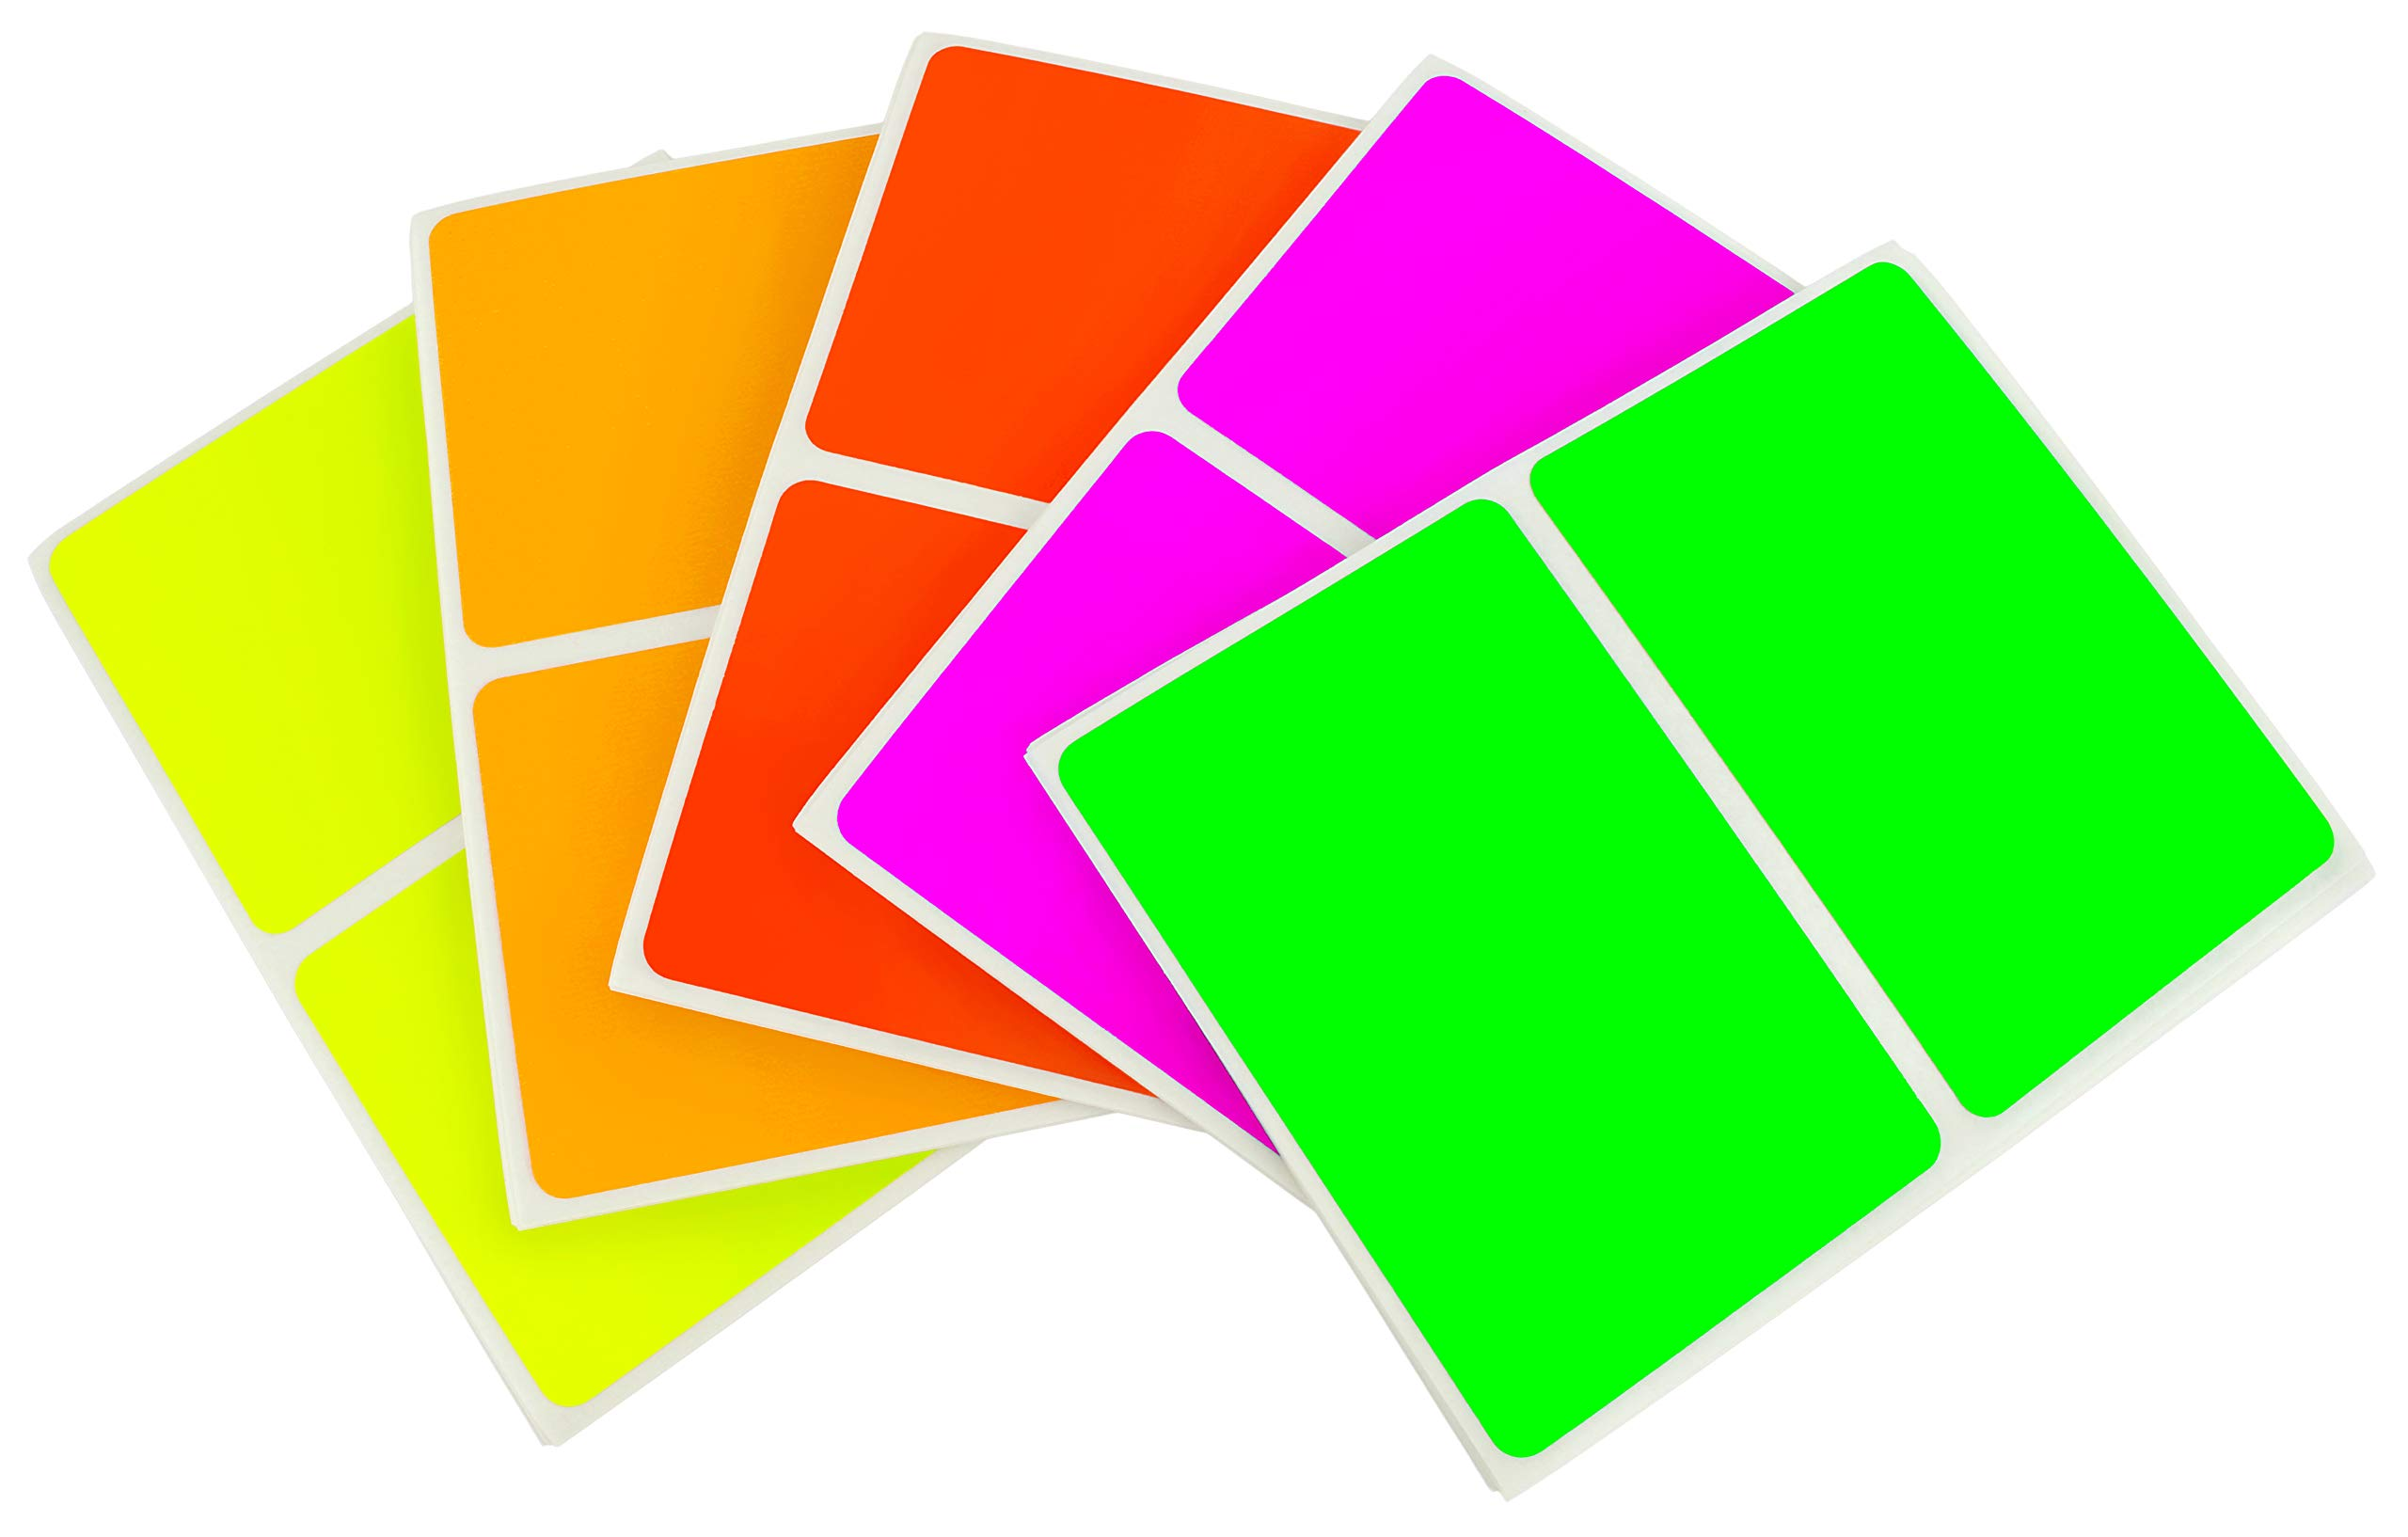 ChromaLabel 2 x 3 Inch Colored Rectangle Name Tag Sticker Kit, 5 Assorted Color Variety Pack,150 Total Labels, Fluorescent